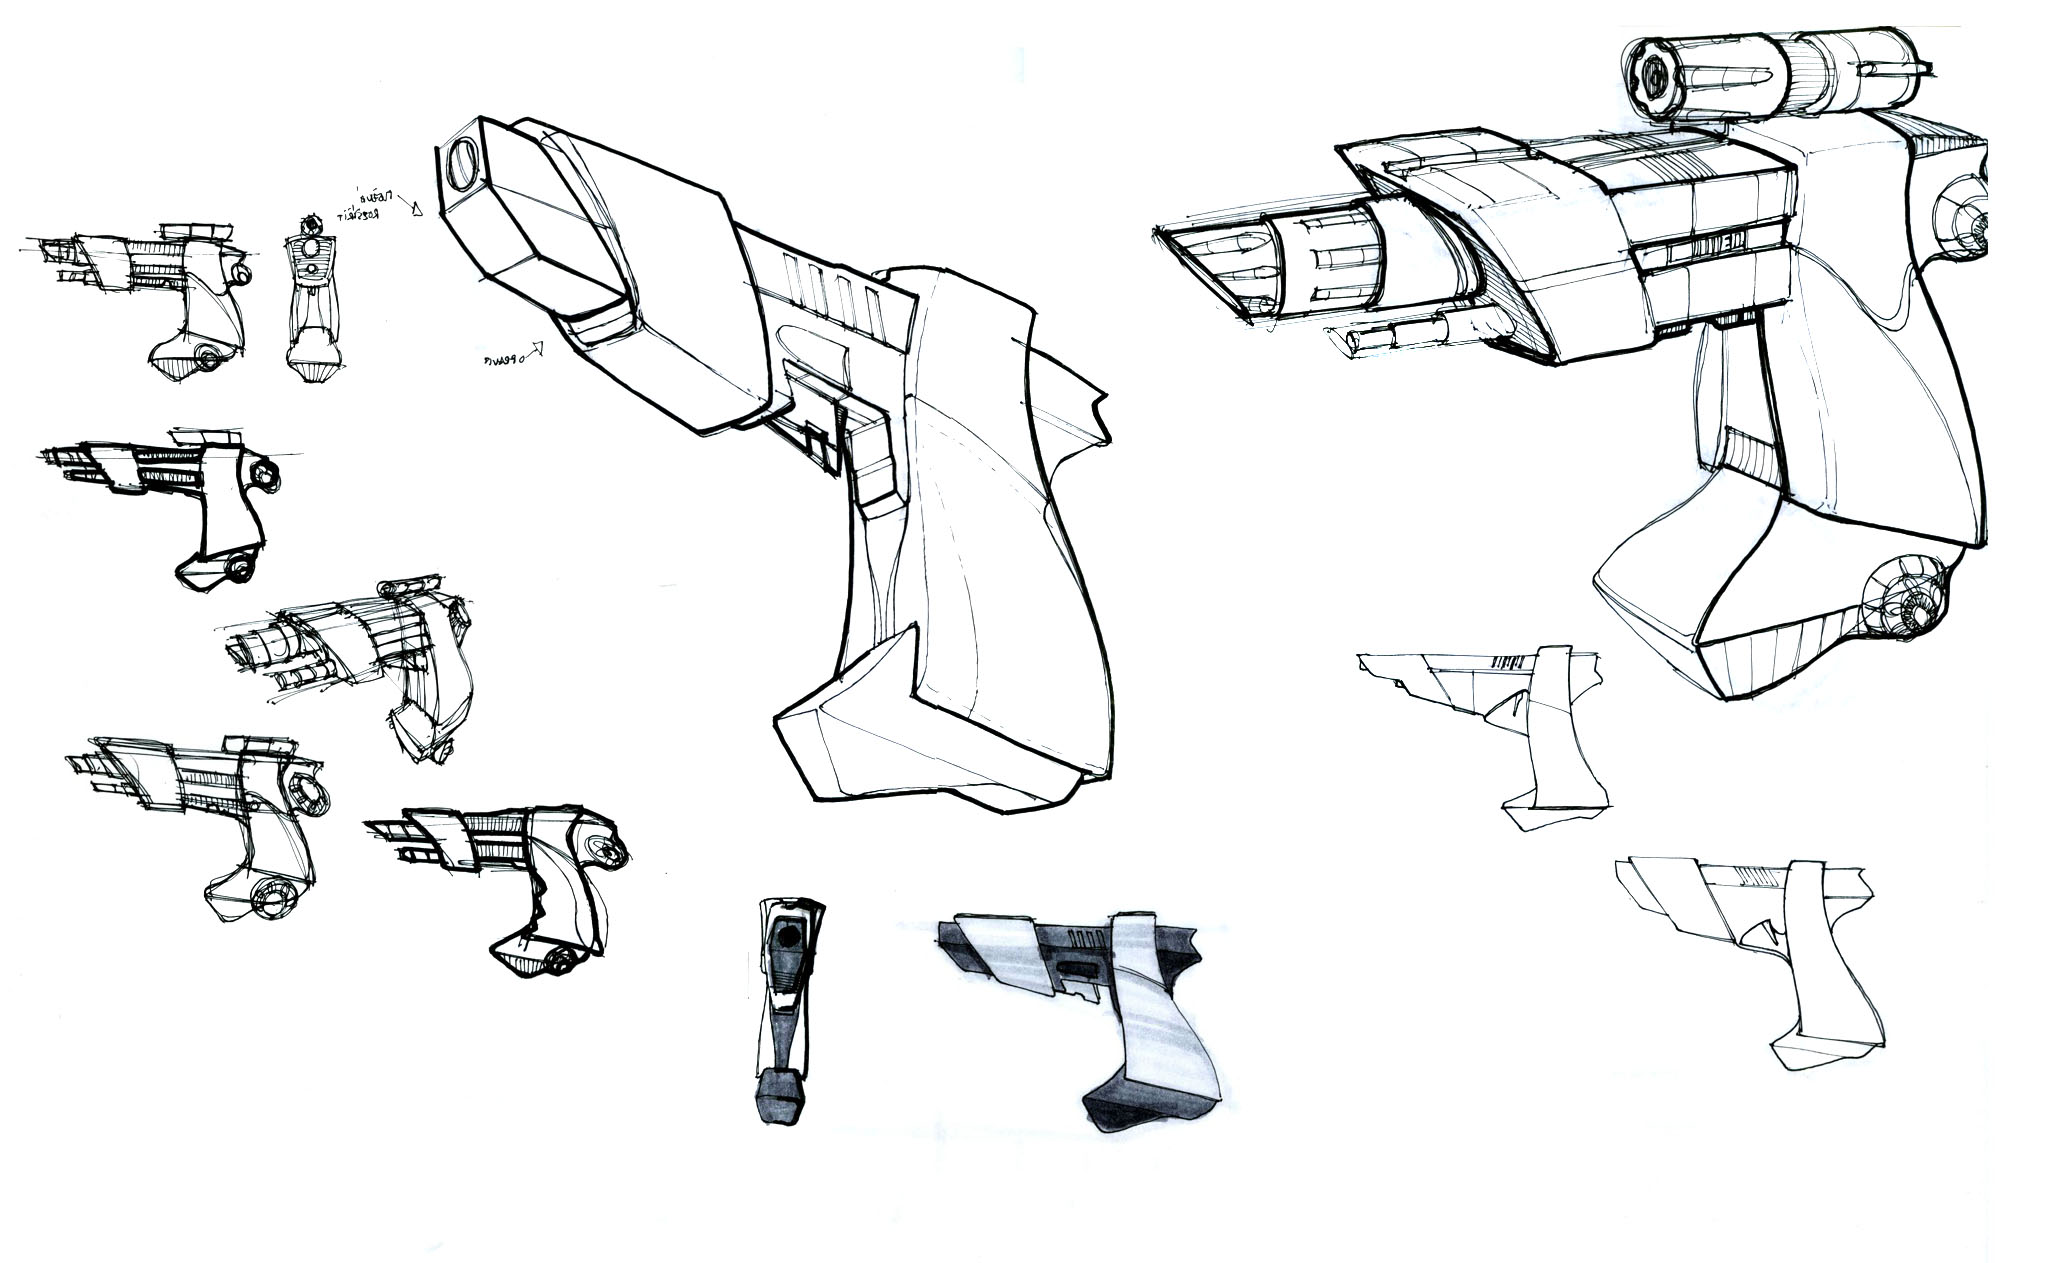 personal gun concept and sketches